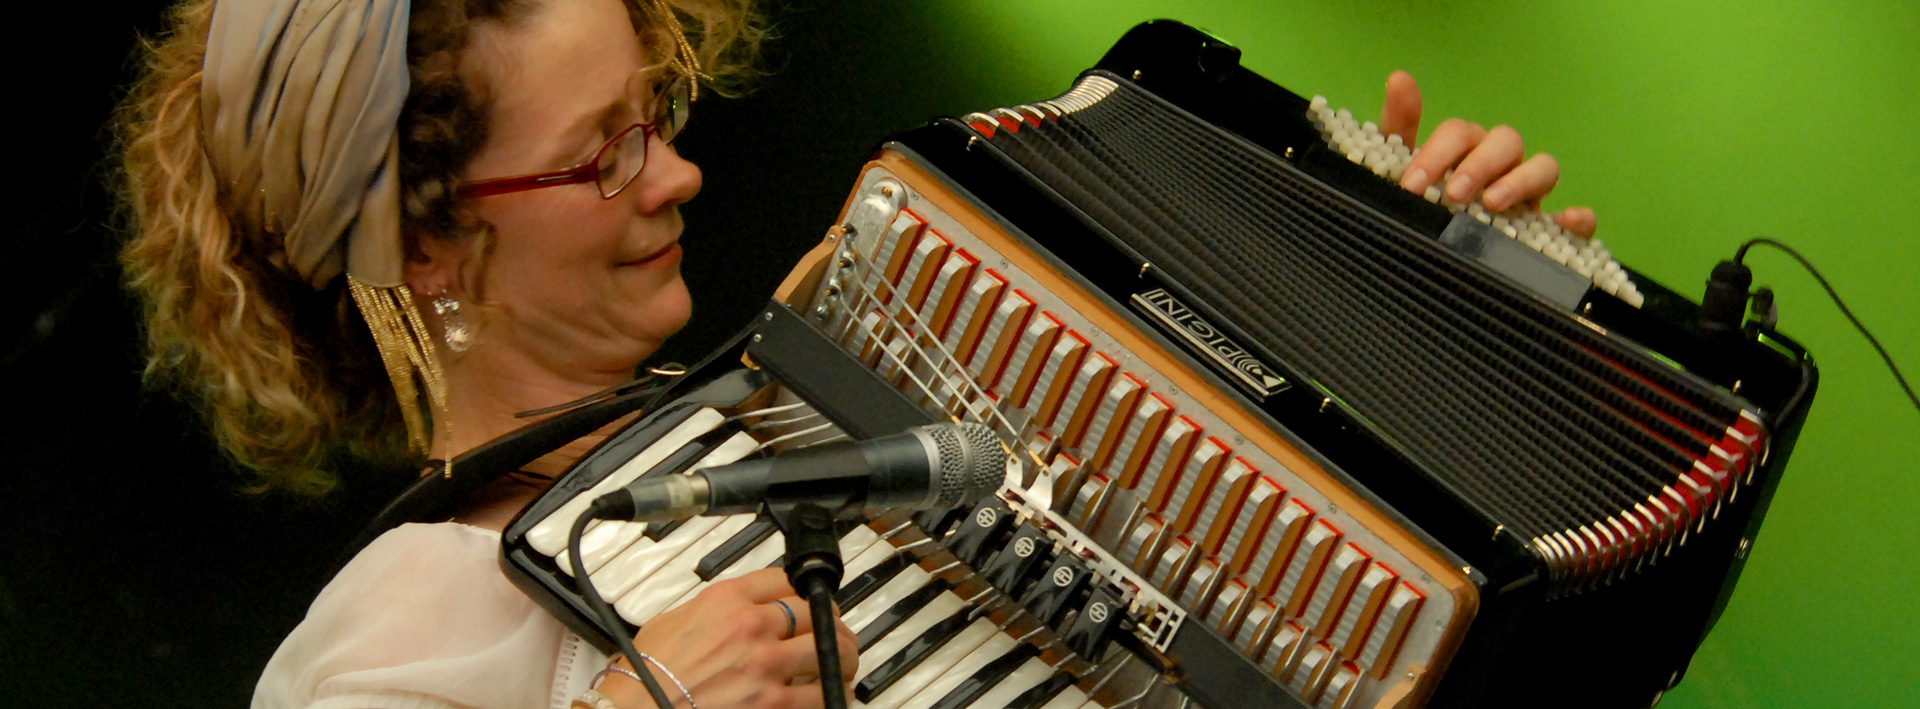 Karen Tweed: Piano Accordion